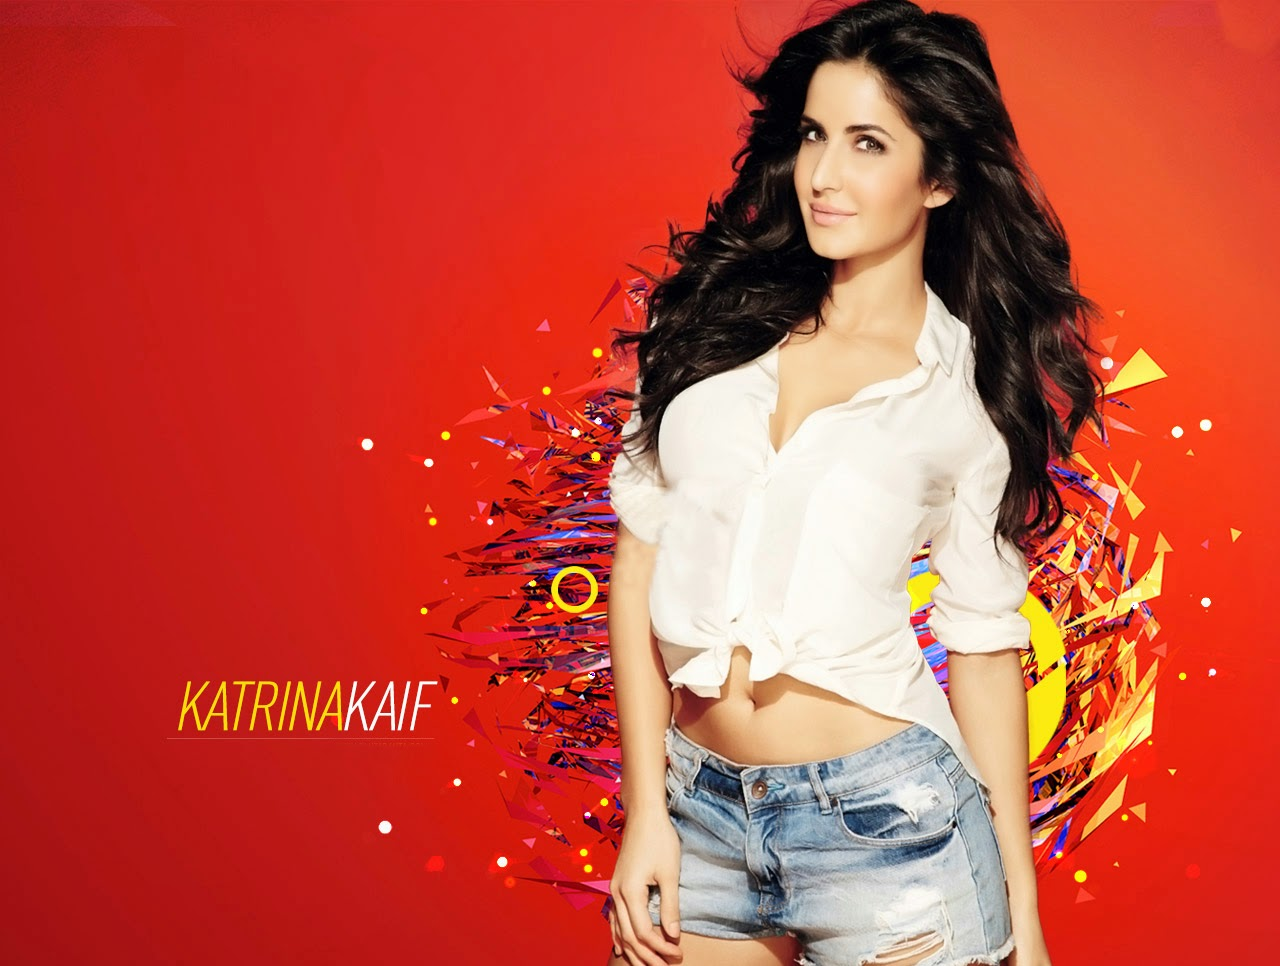 katrina-kaif-hot-wallpapers-download-free-for-laptop